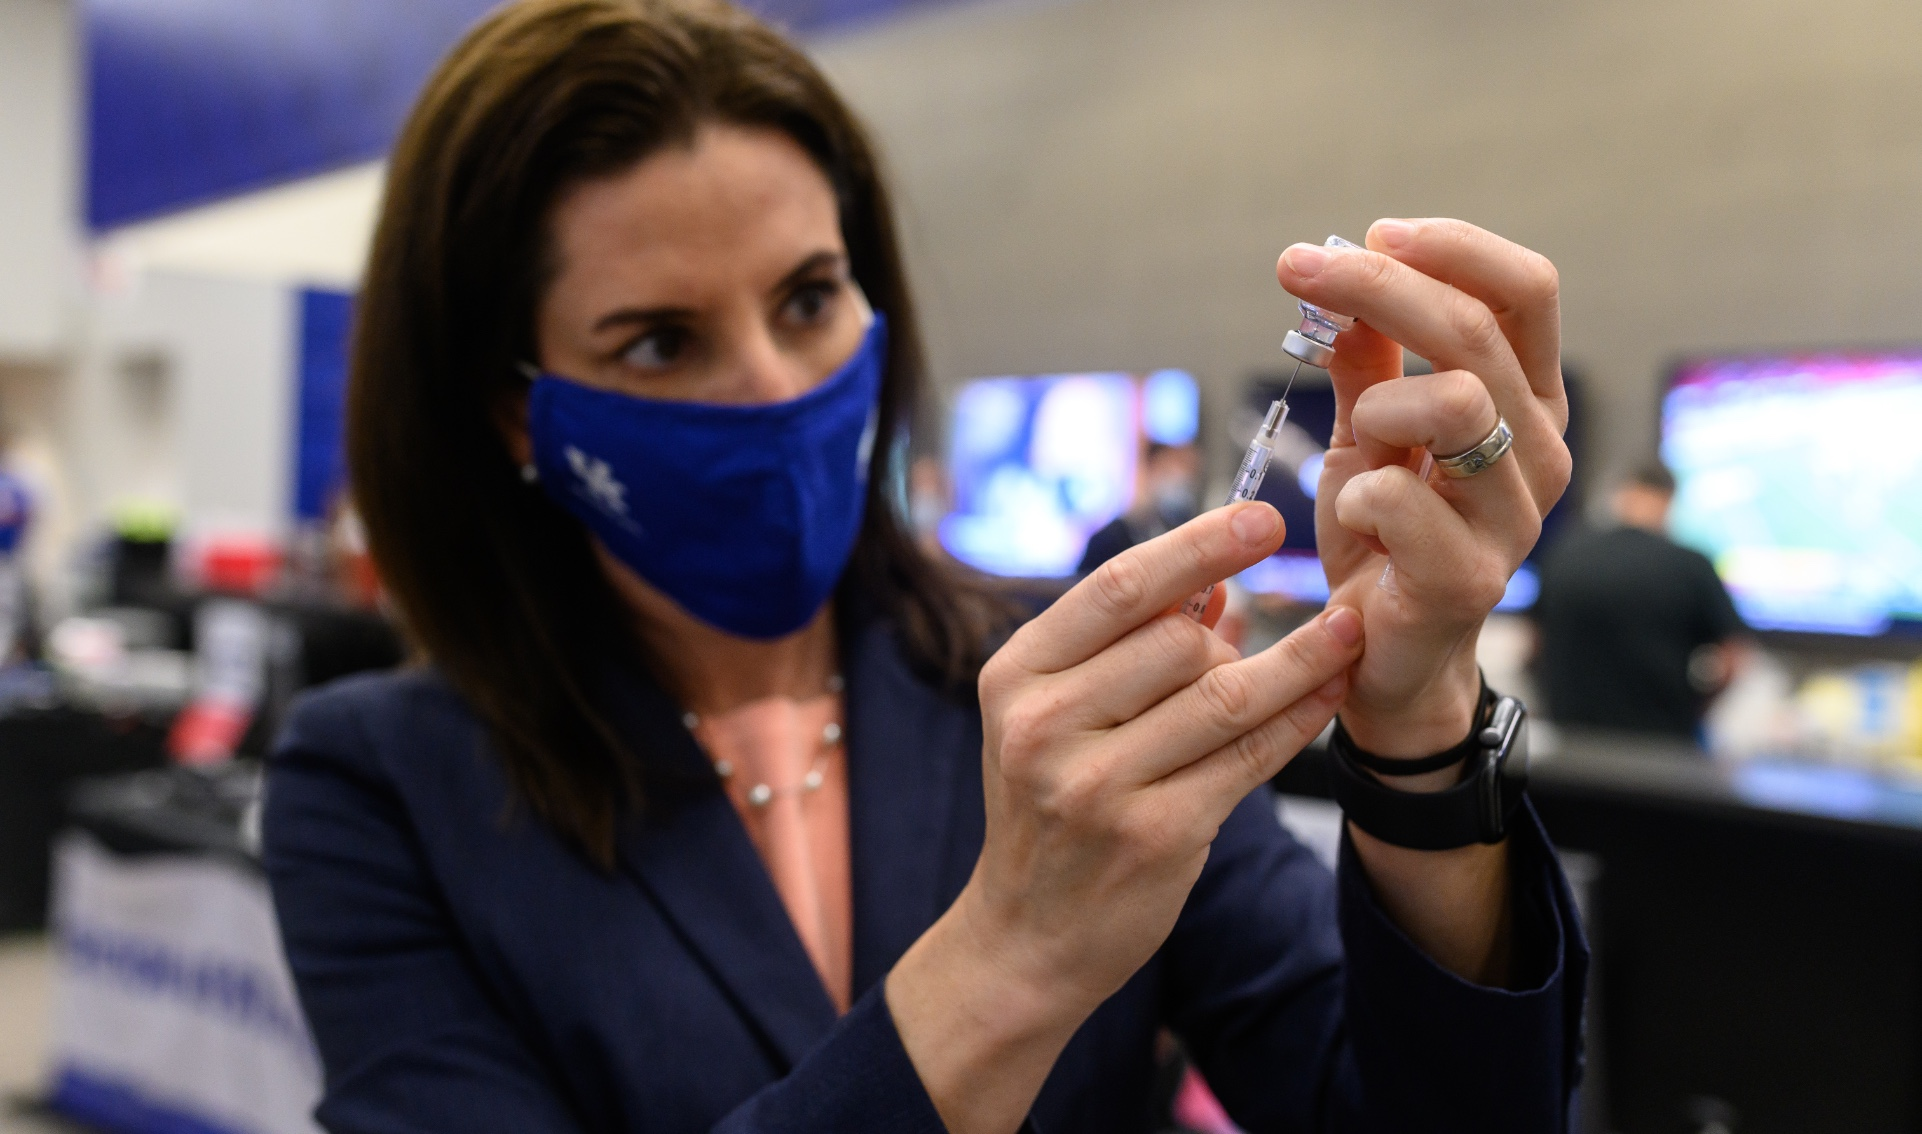 Dr. Montgomery-Yates, wearing a facemask, pulls a dose from a vial of vaccine.